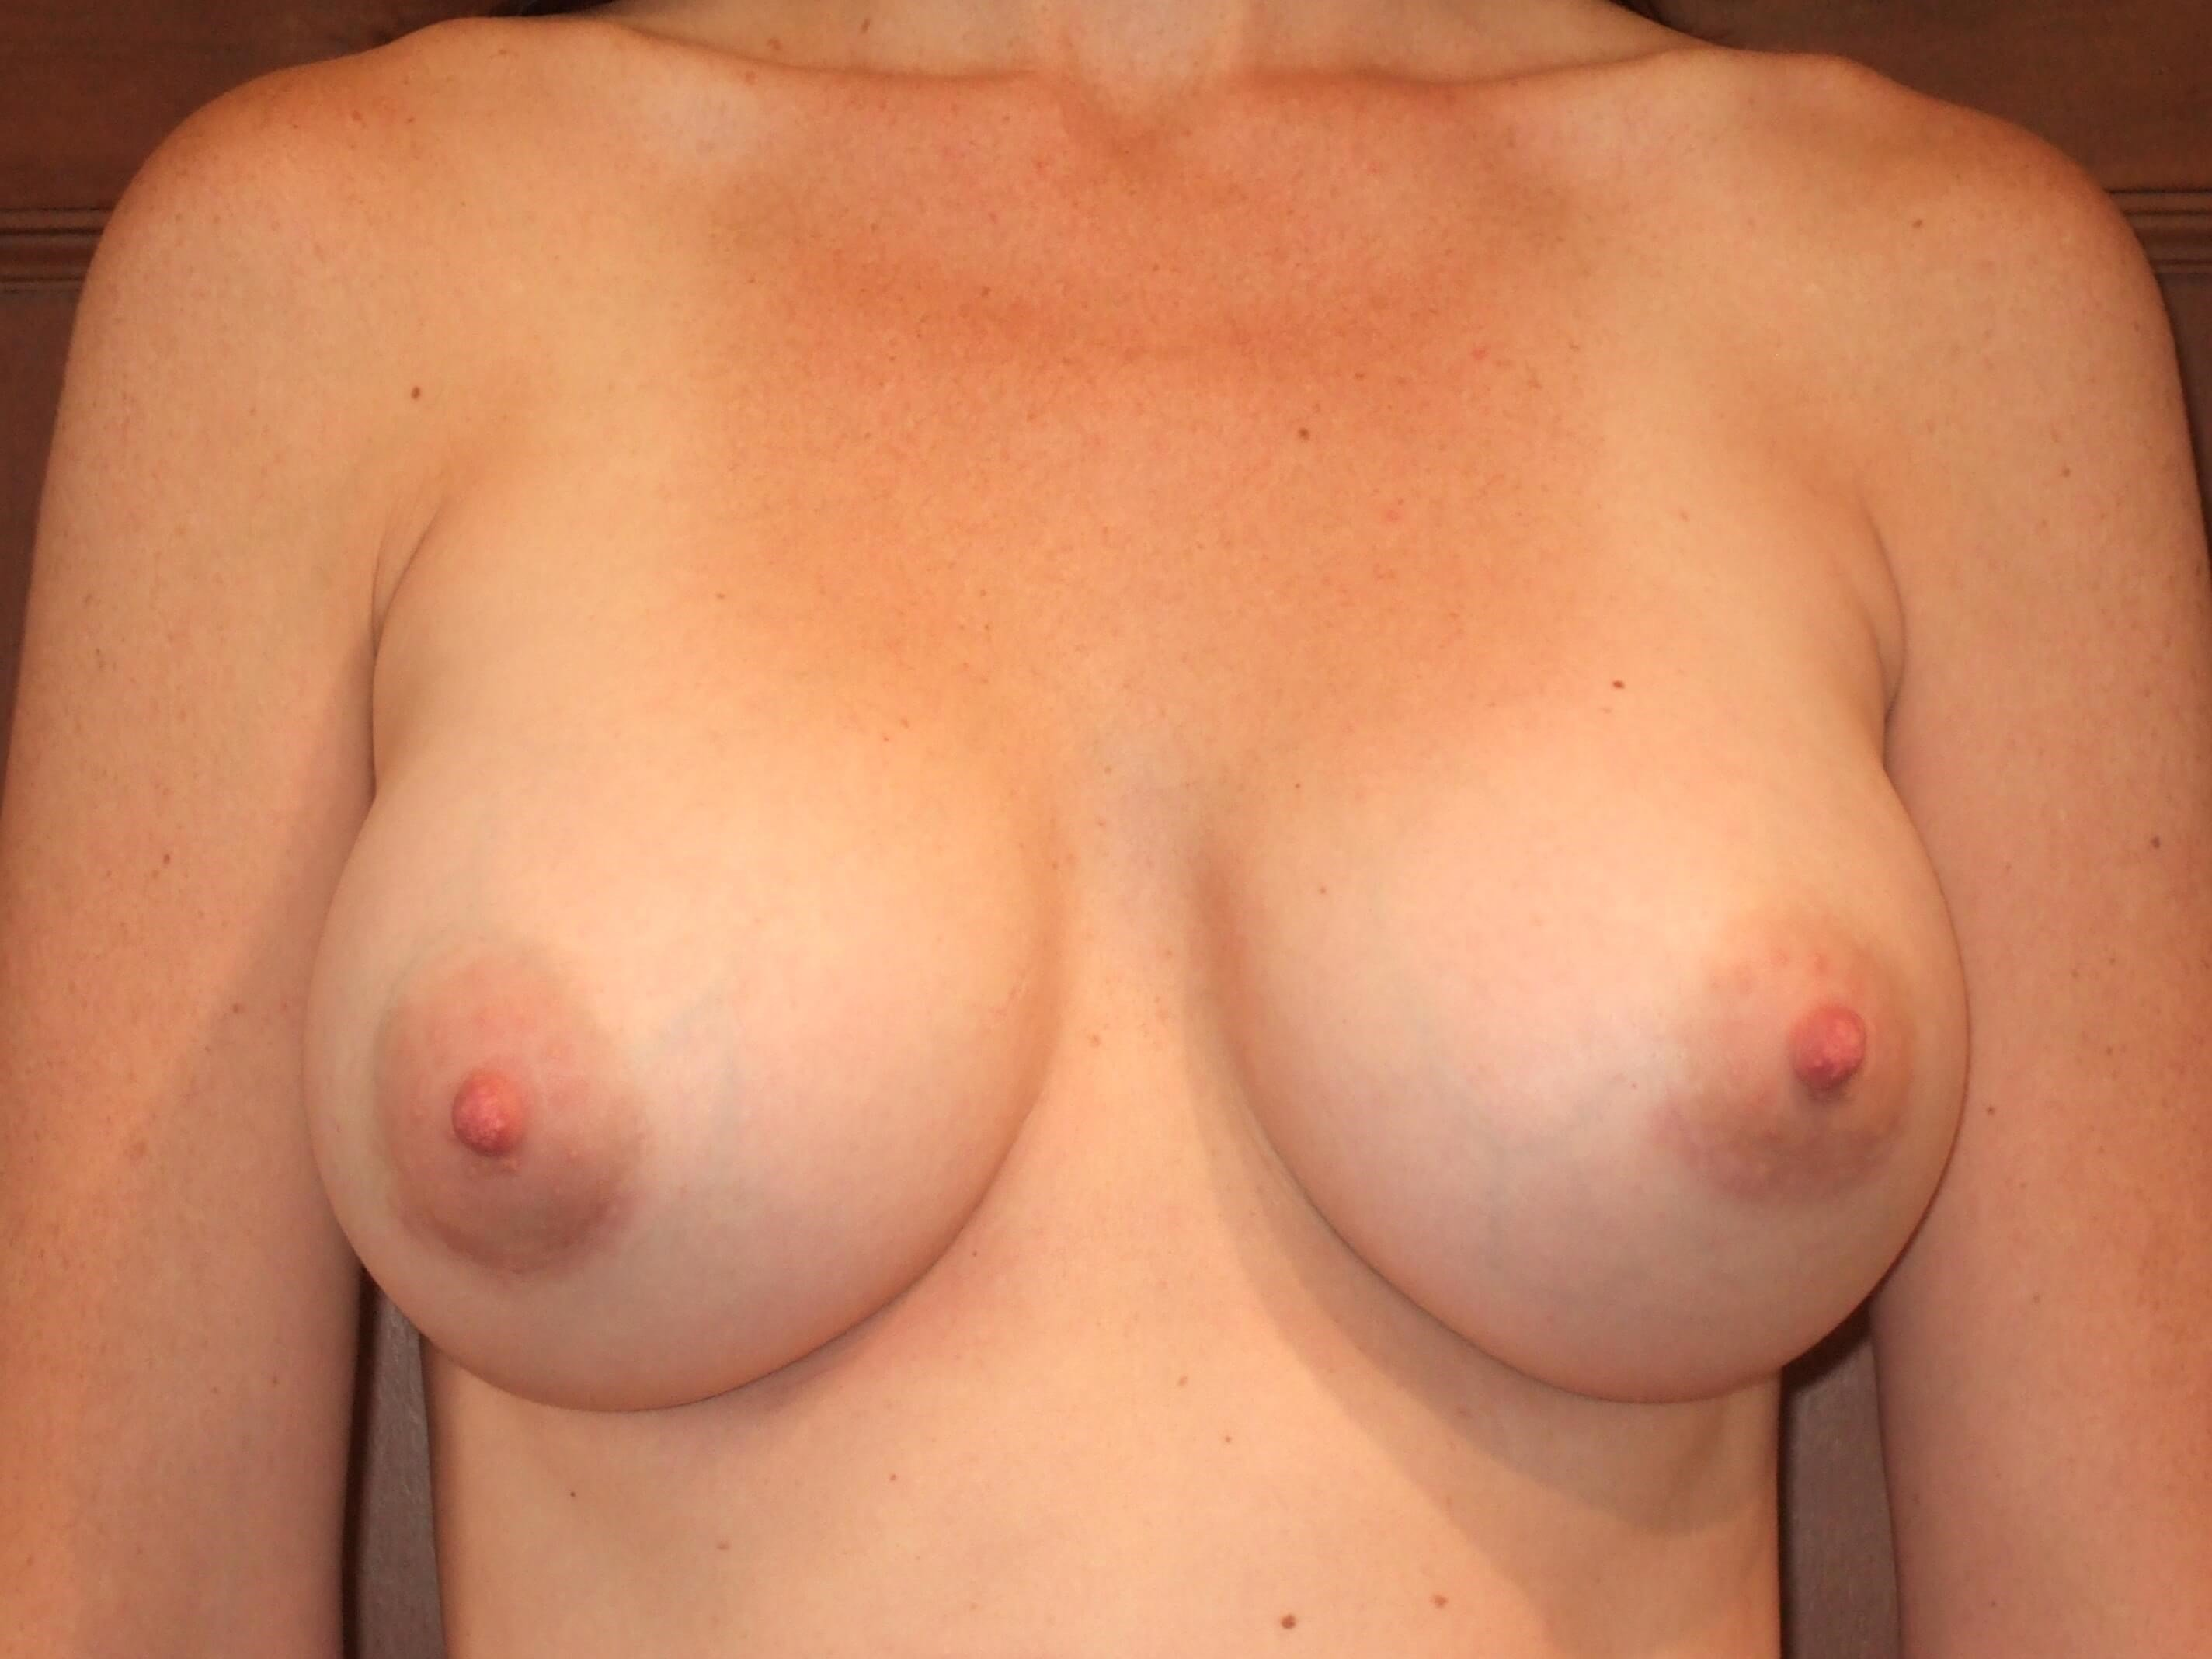 Breast Augmentation: Front After Breast Augmentation